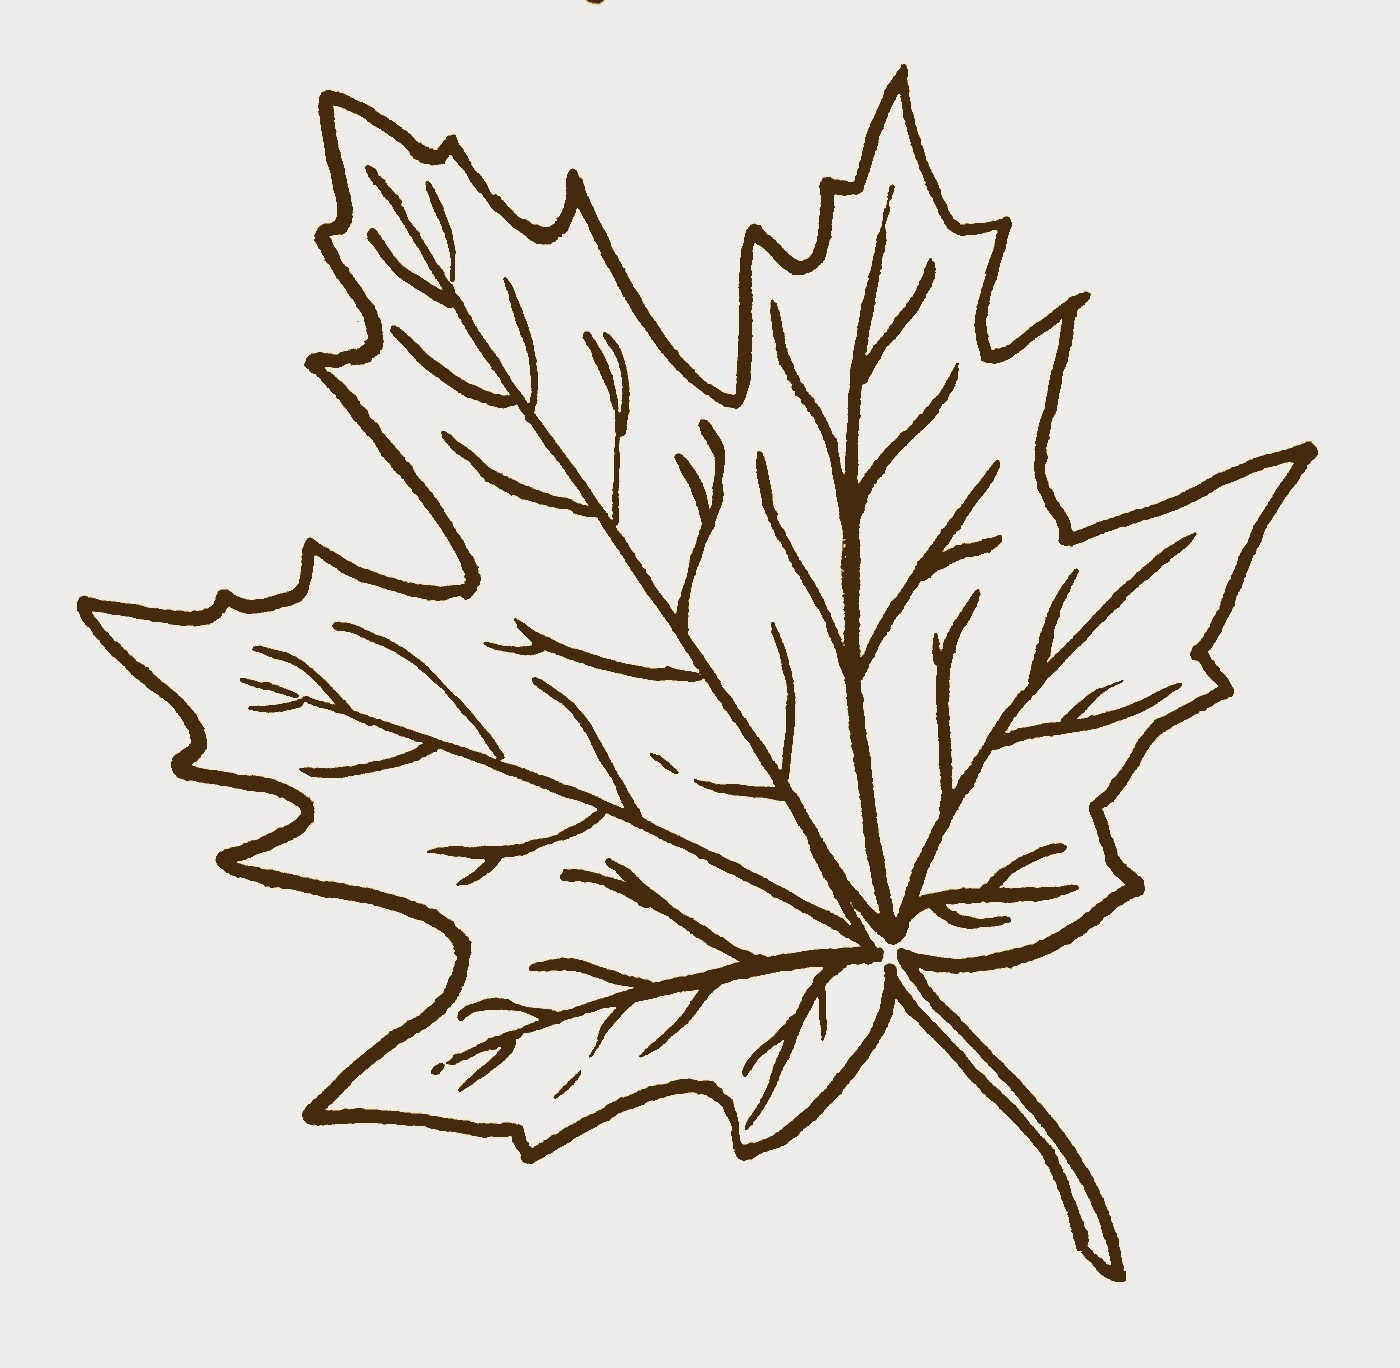 Maple leaf clipart black and white vector transparent stock Maple leaf clipart black and white 1 » Clipart Station vector transparent stock